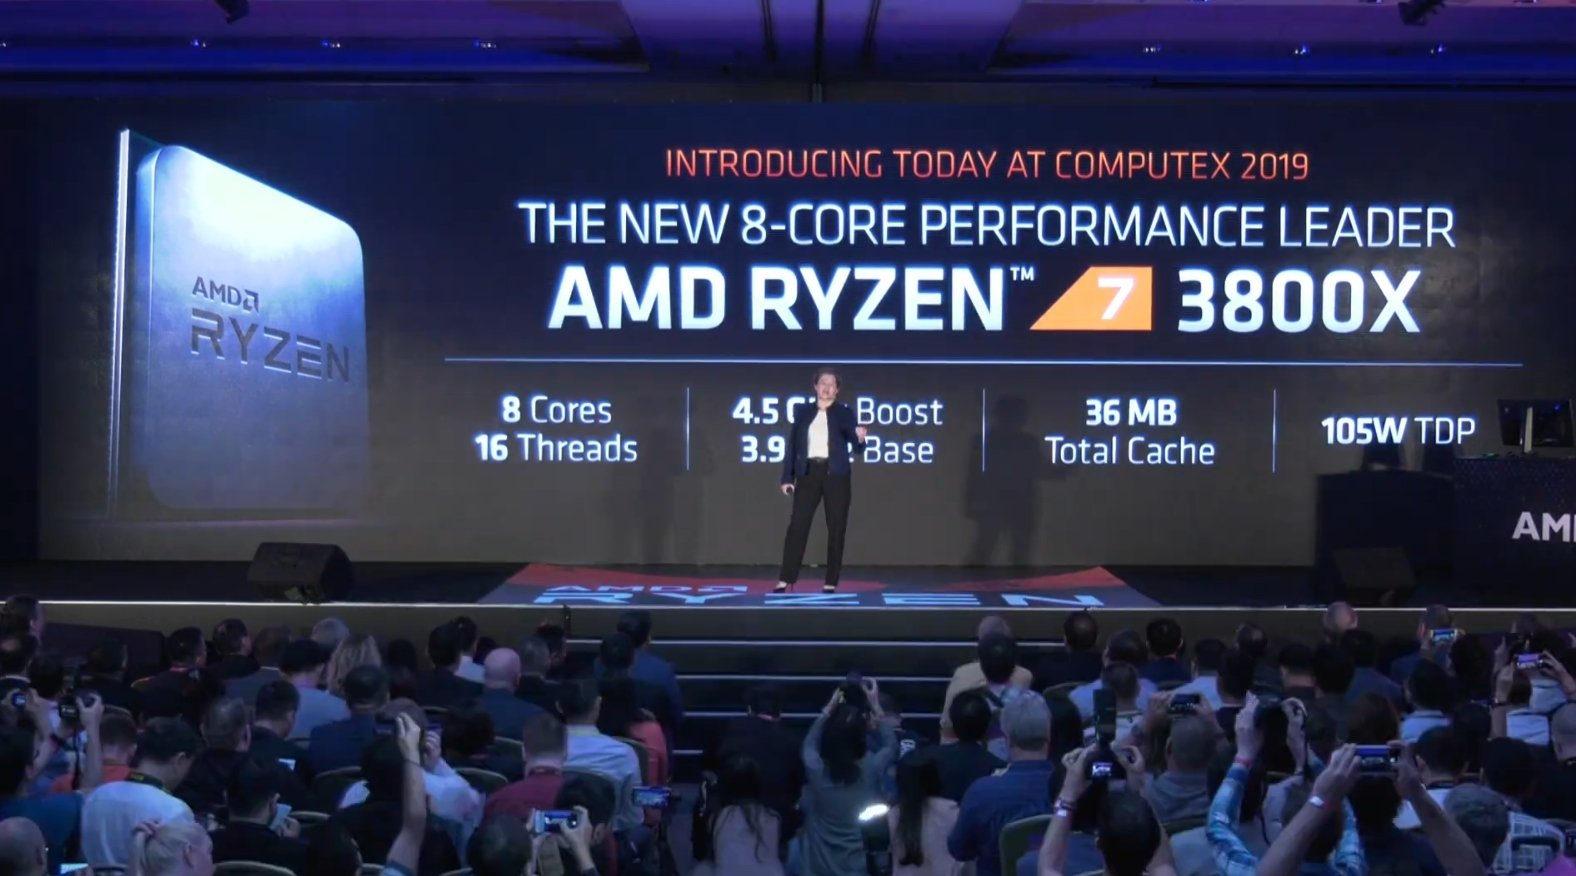 Ryzen - 8 3000 3600X 3700X 3800X 7nm Zen2 Computex 2019 historica conferencia Lisa Su AMD in4 noticias granada